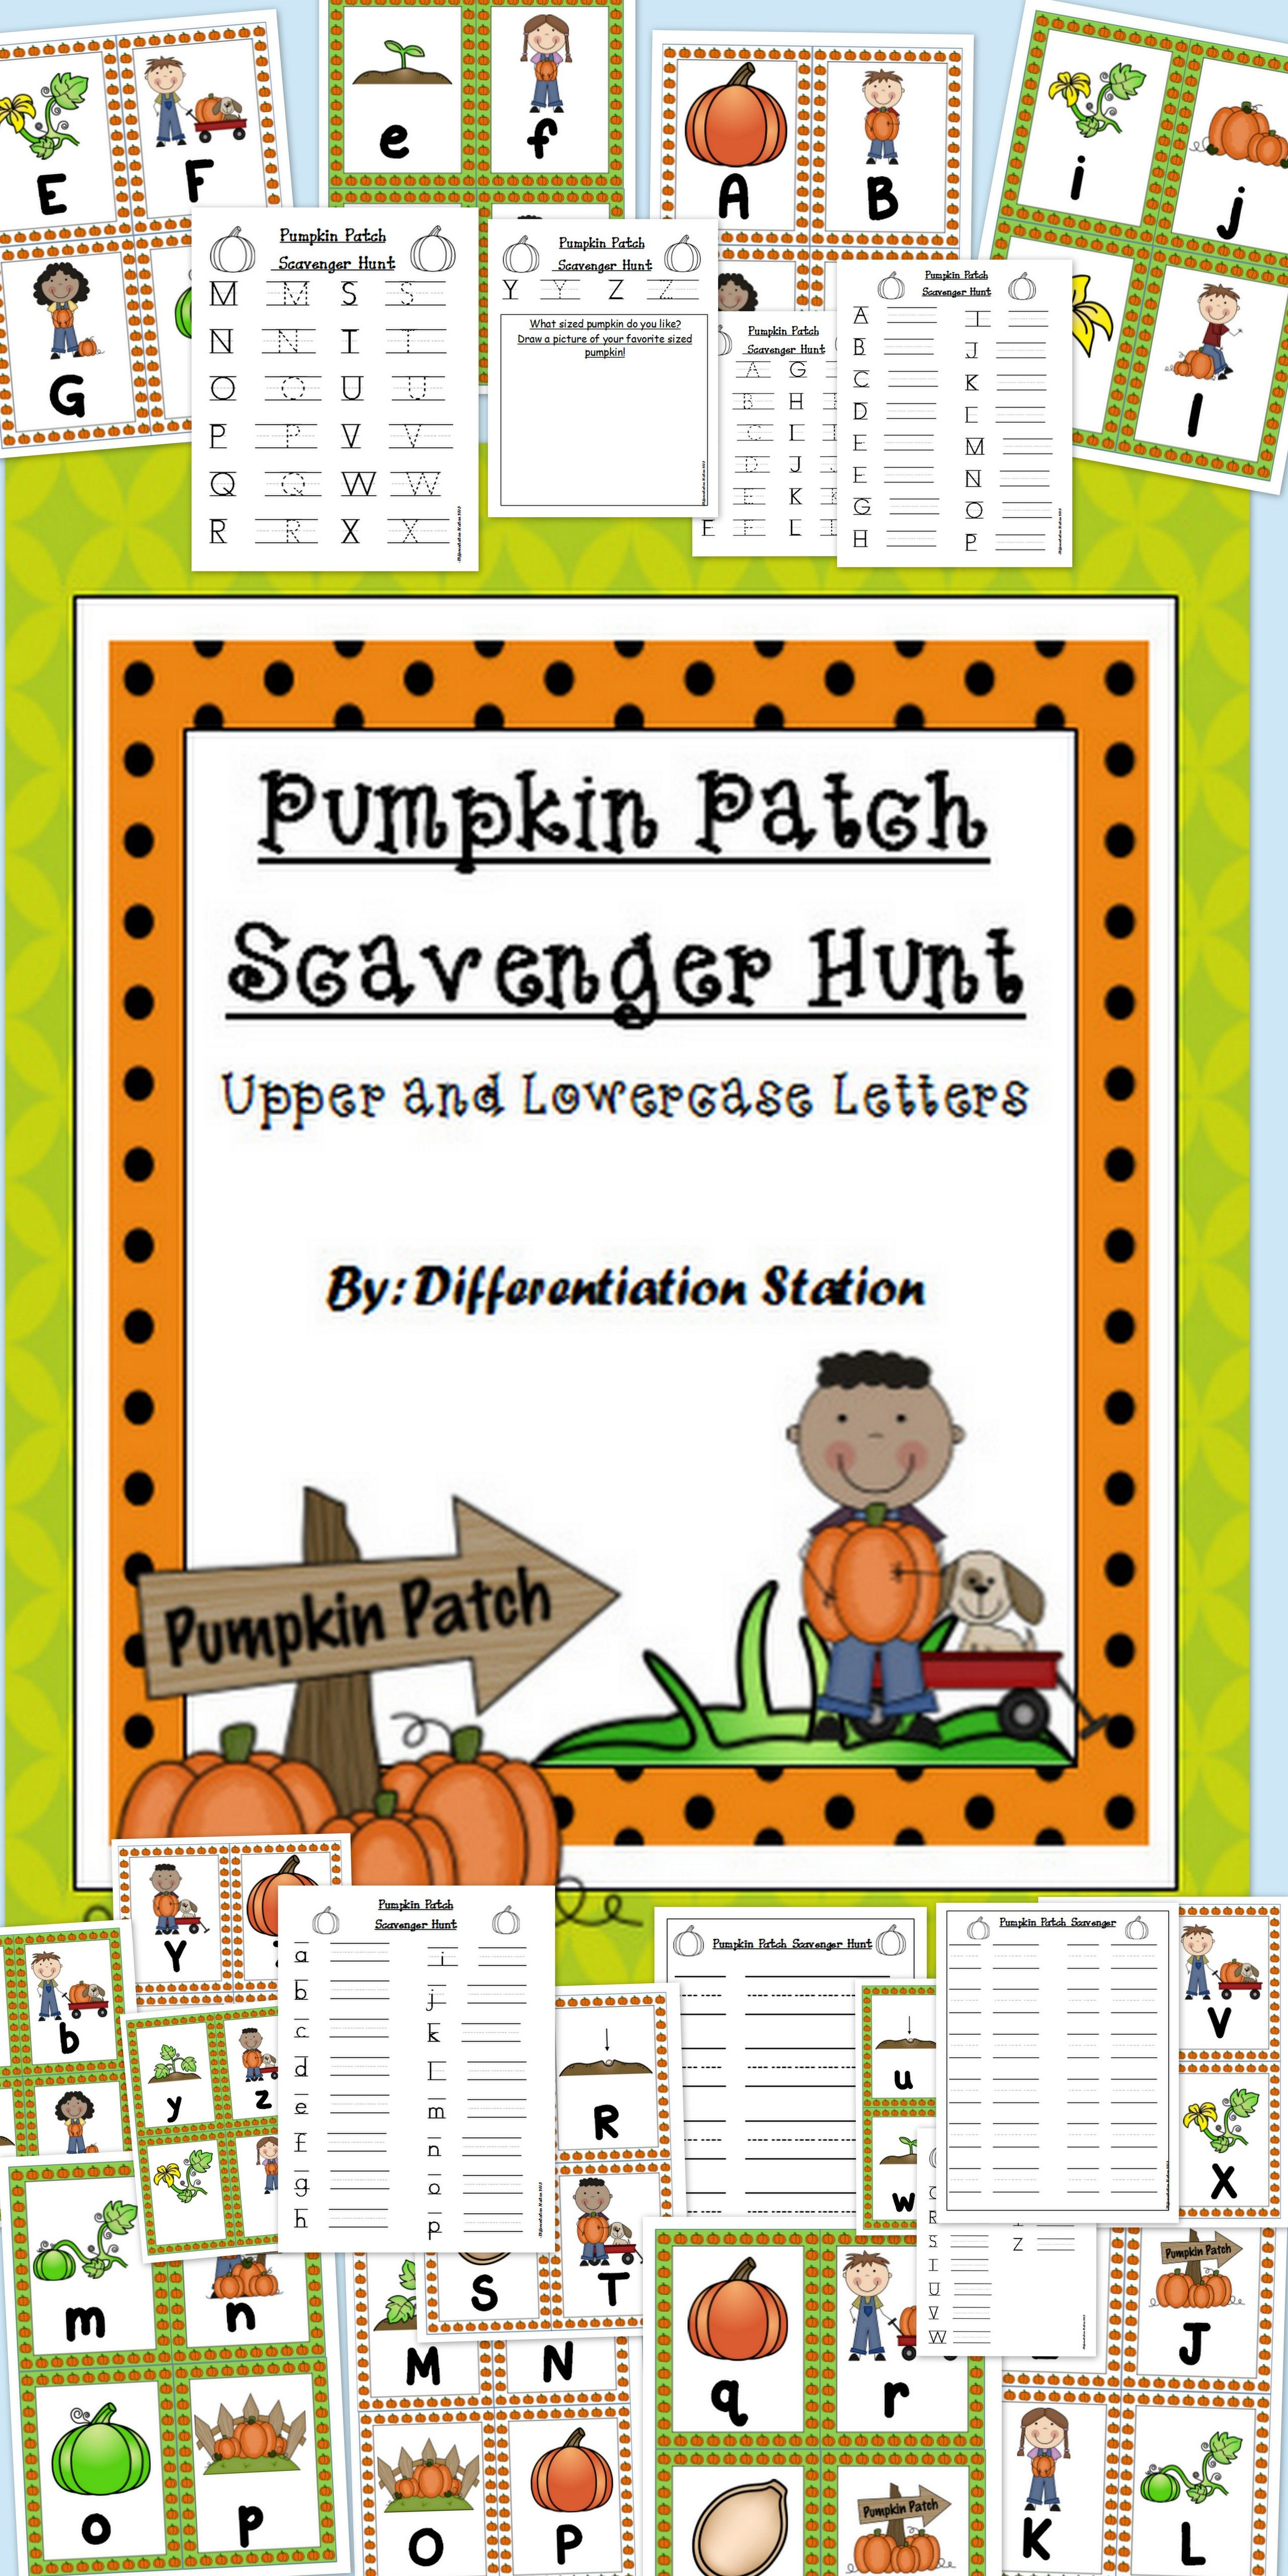 Pumpkin Patch Scavenger Hunt Upper And Lowercase Alphabet